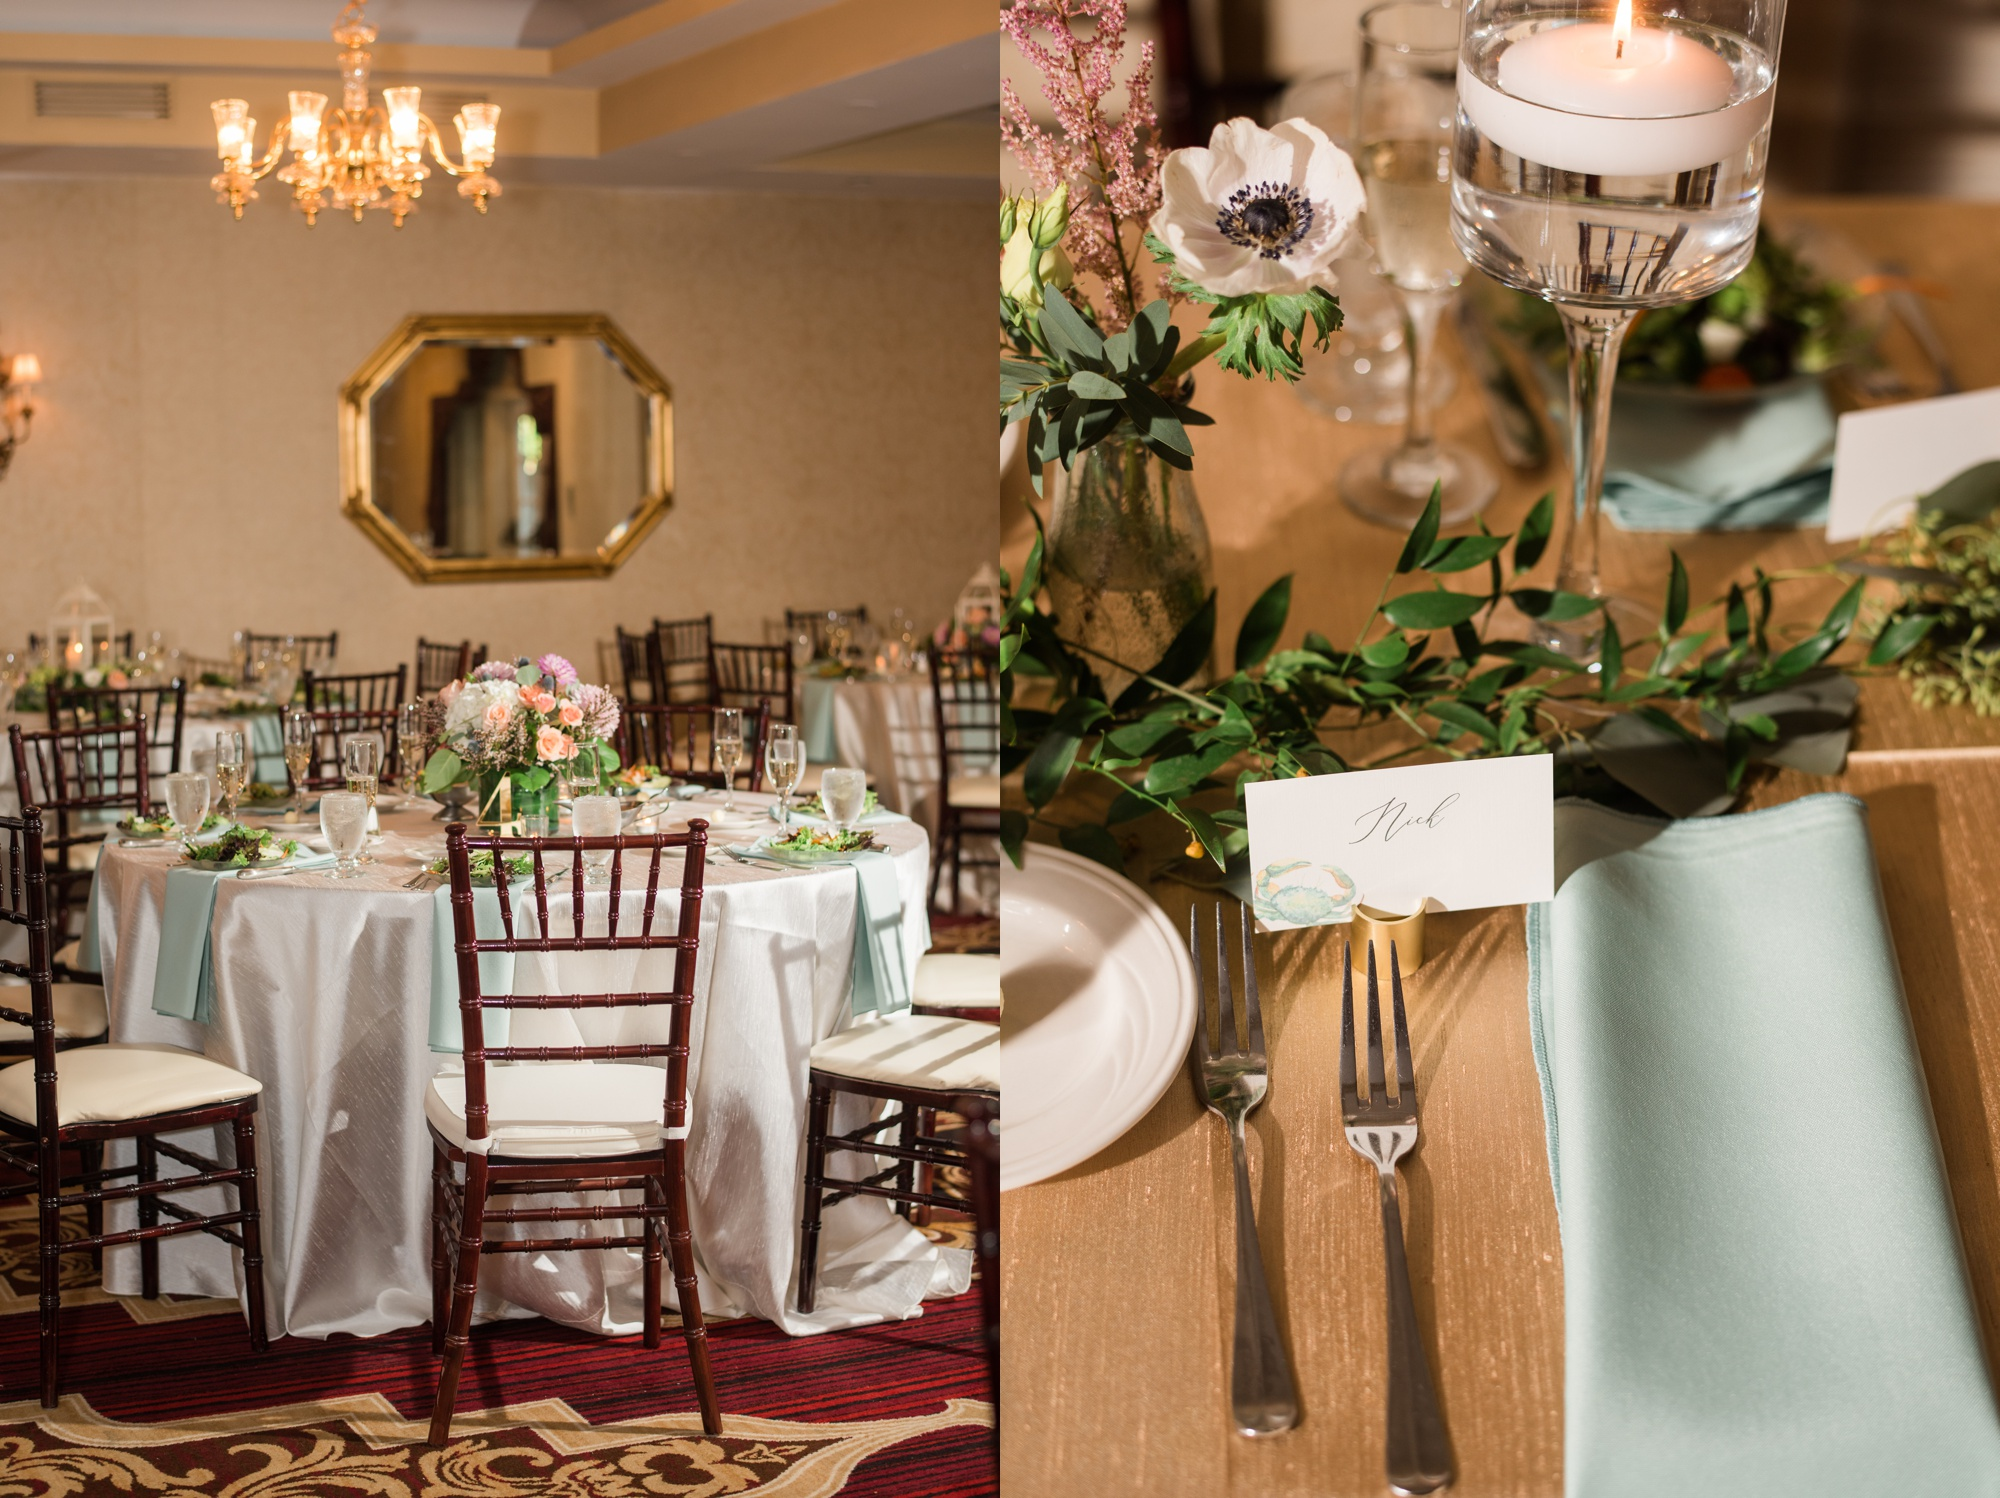 Historic Inns of Annapolis wedding details